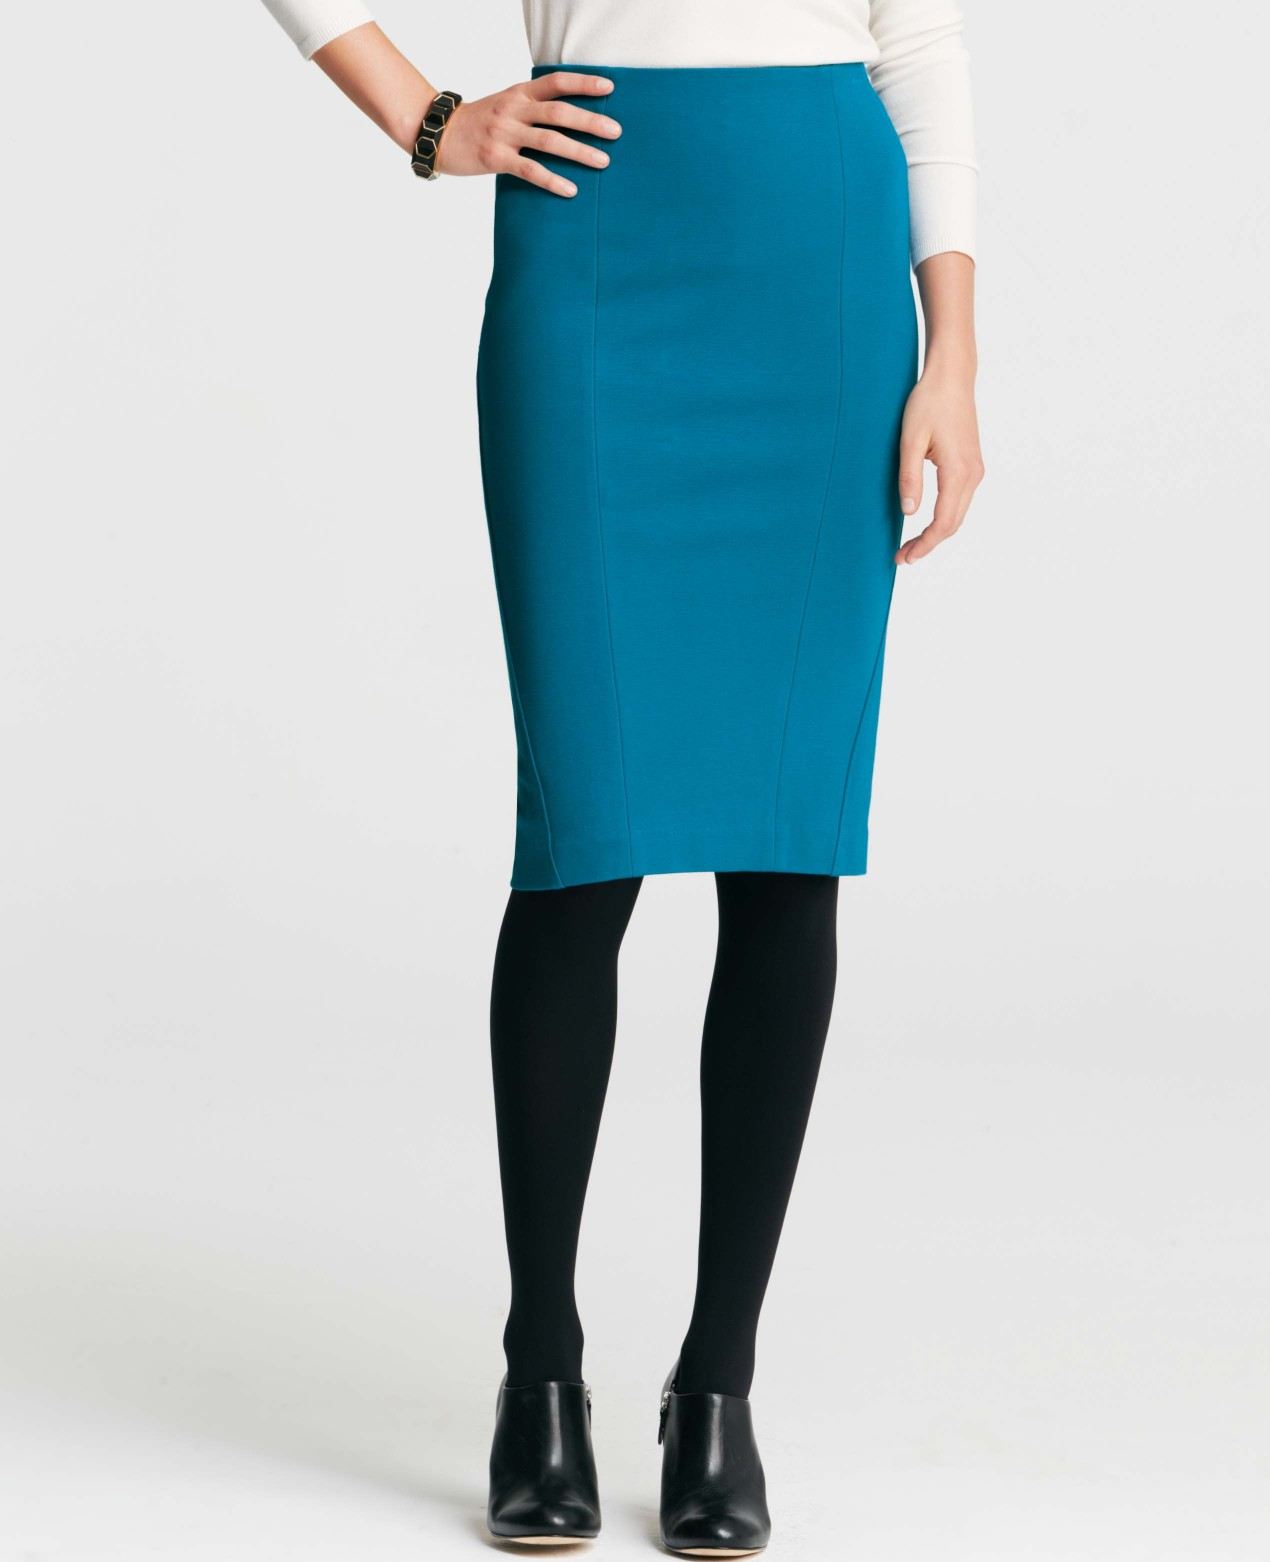 Find the perfect tall skirts at Ann Taylor. Shop our newest collection of irresistibly chic styles - perfect for workdays, weekends and everything in between. FREE SHIPPING* + 50% OFF YOUR PURCHASE USE CODE: READYSETGO DETAILS. Please log out of your account to ship internationally.